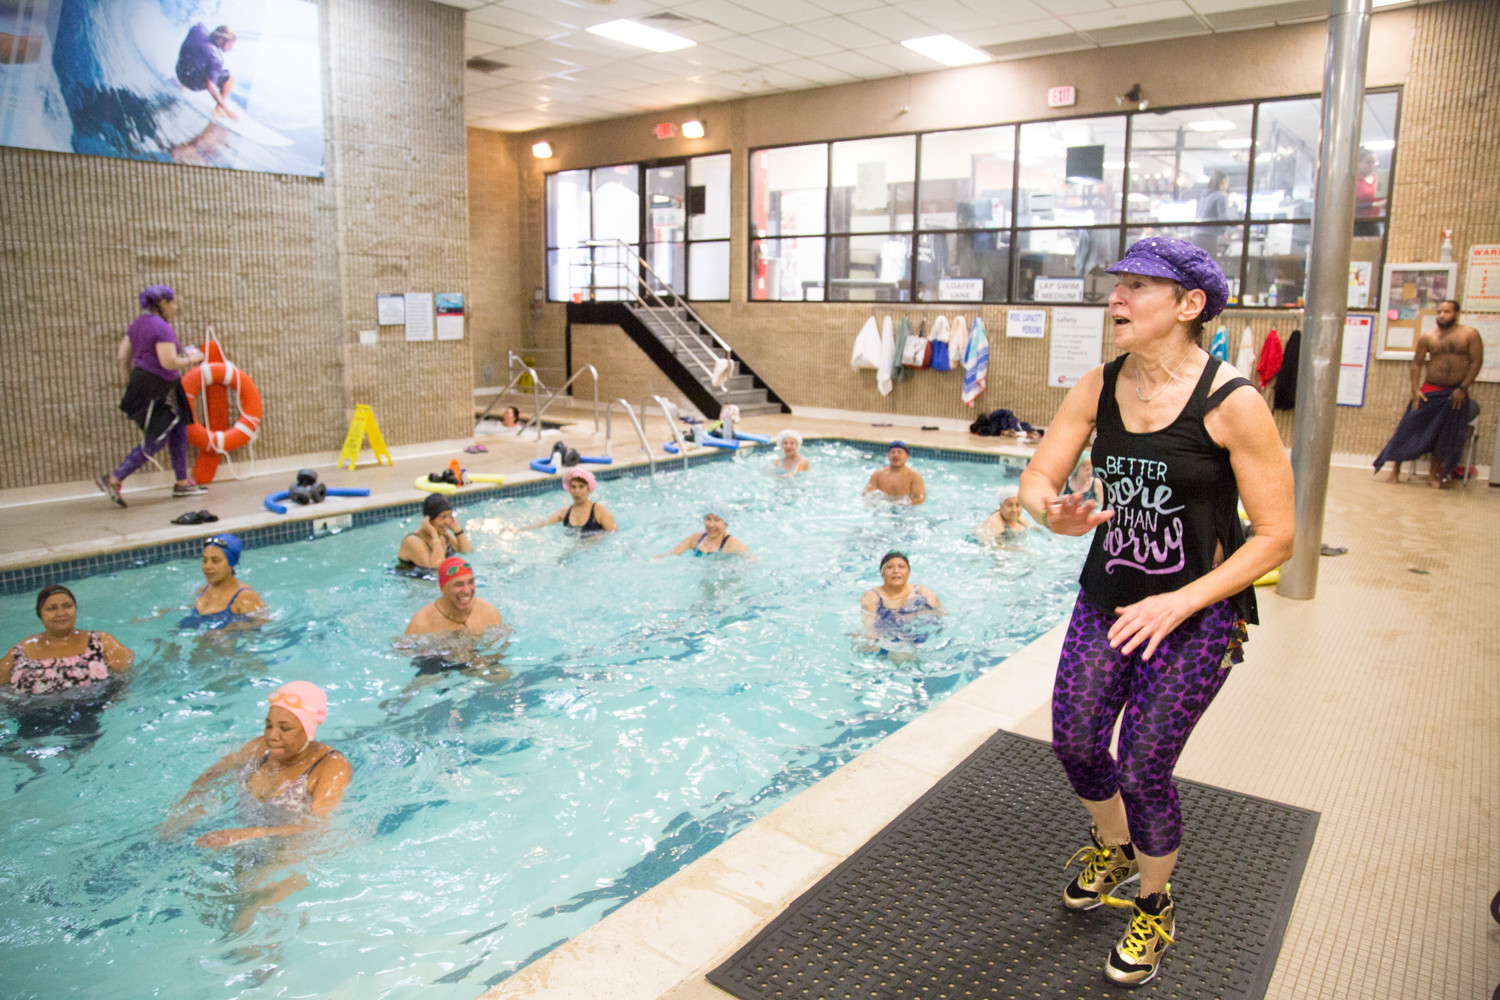 Aquatic fitness instructor Jacqueline Gikow leads a three-hour class during World Aquathon Day on Nov. 11 at 24 Hour Fitness. Gikow brought the event to the 298 W. 231st St., location two years ago to celebrate aquatic fitness. Proceeds go to the Memorial Sloan Kettering Cancer Center.